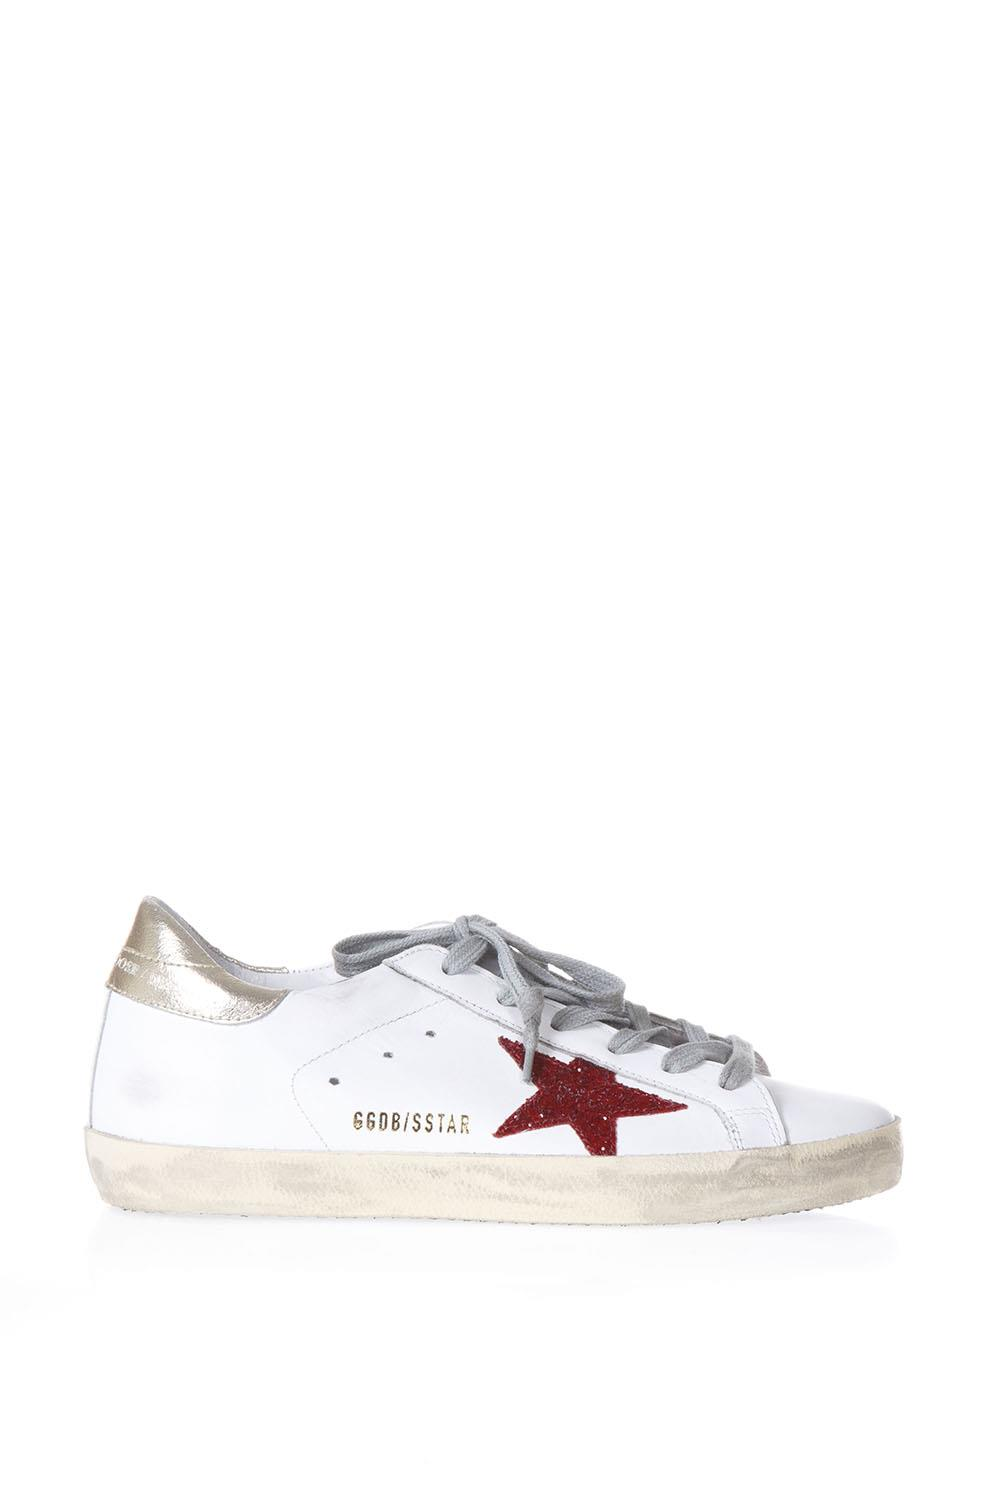 52cecea42e389 WHITE SUPERSTAR GLITTER CRYSTAL SNEAKERS SS 2018 - GOLDEN GOOSE DELUXE BRAND  - Boutique Galiano